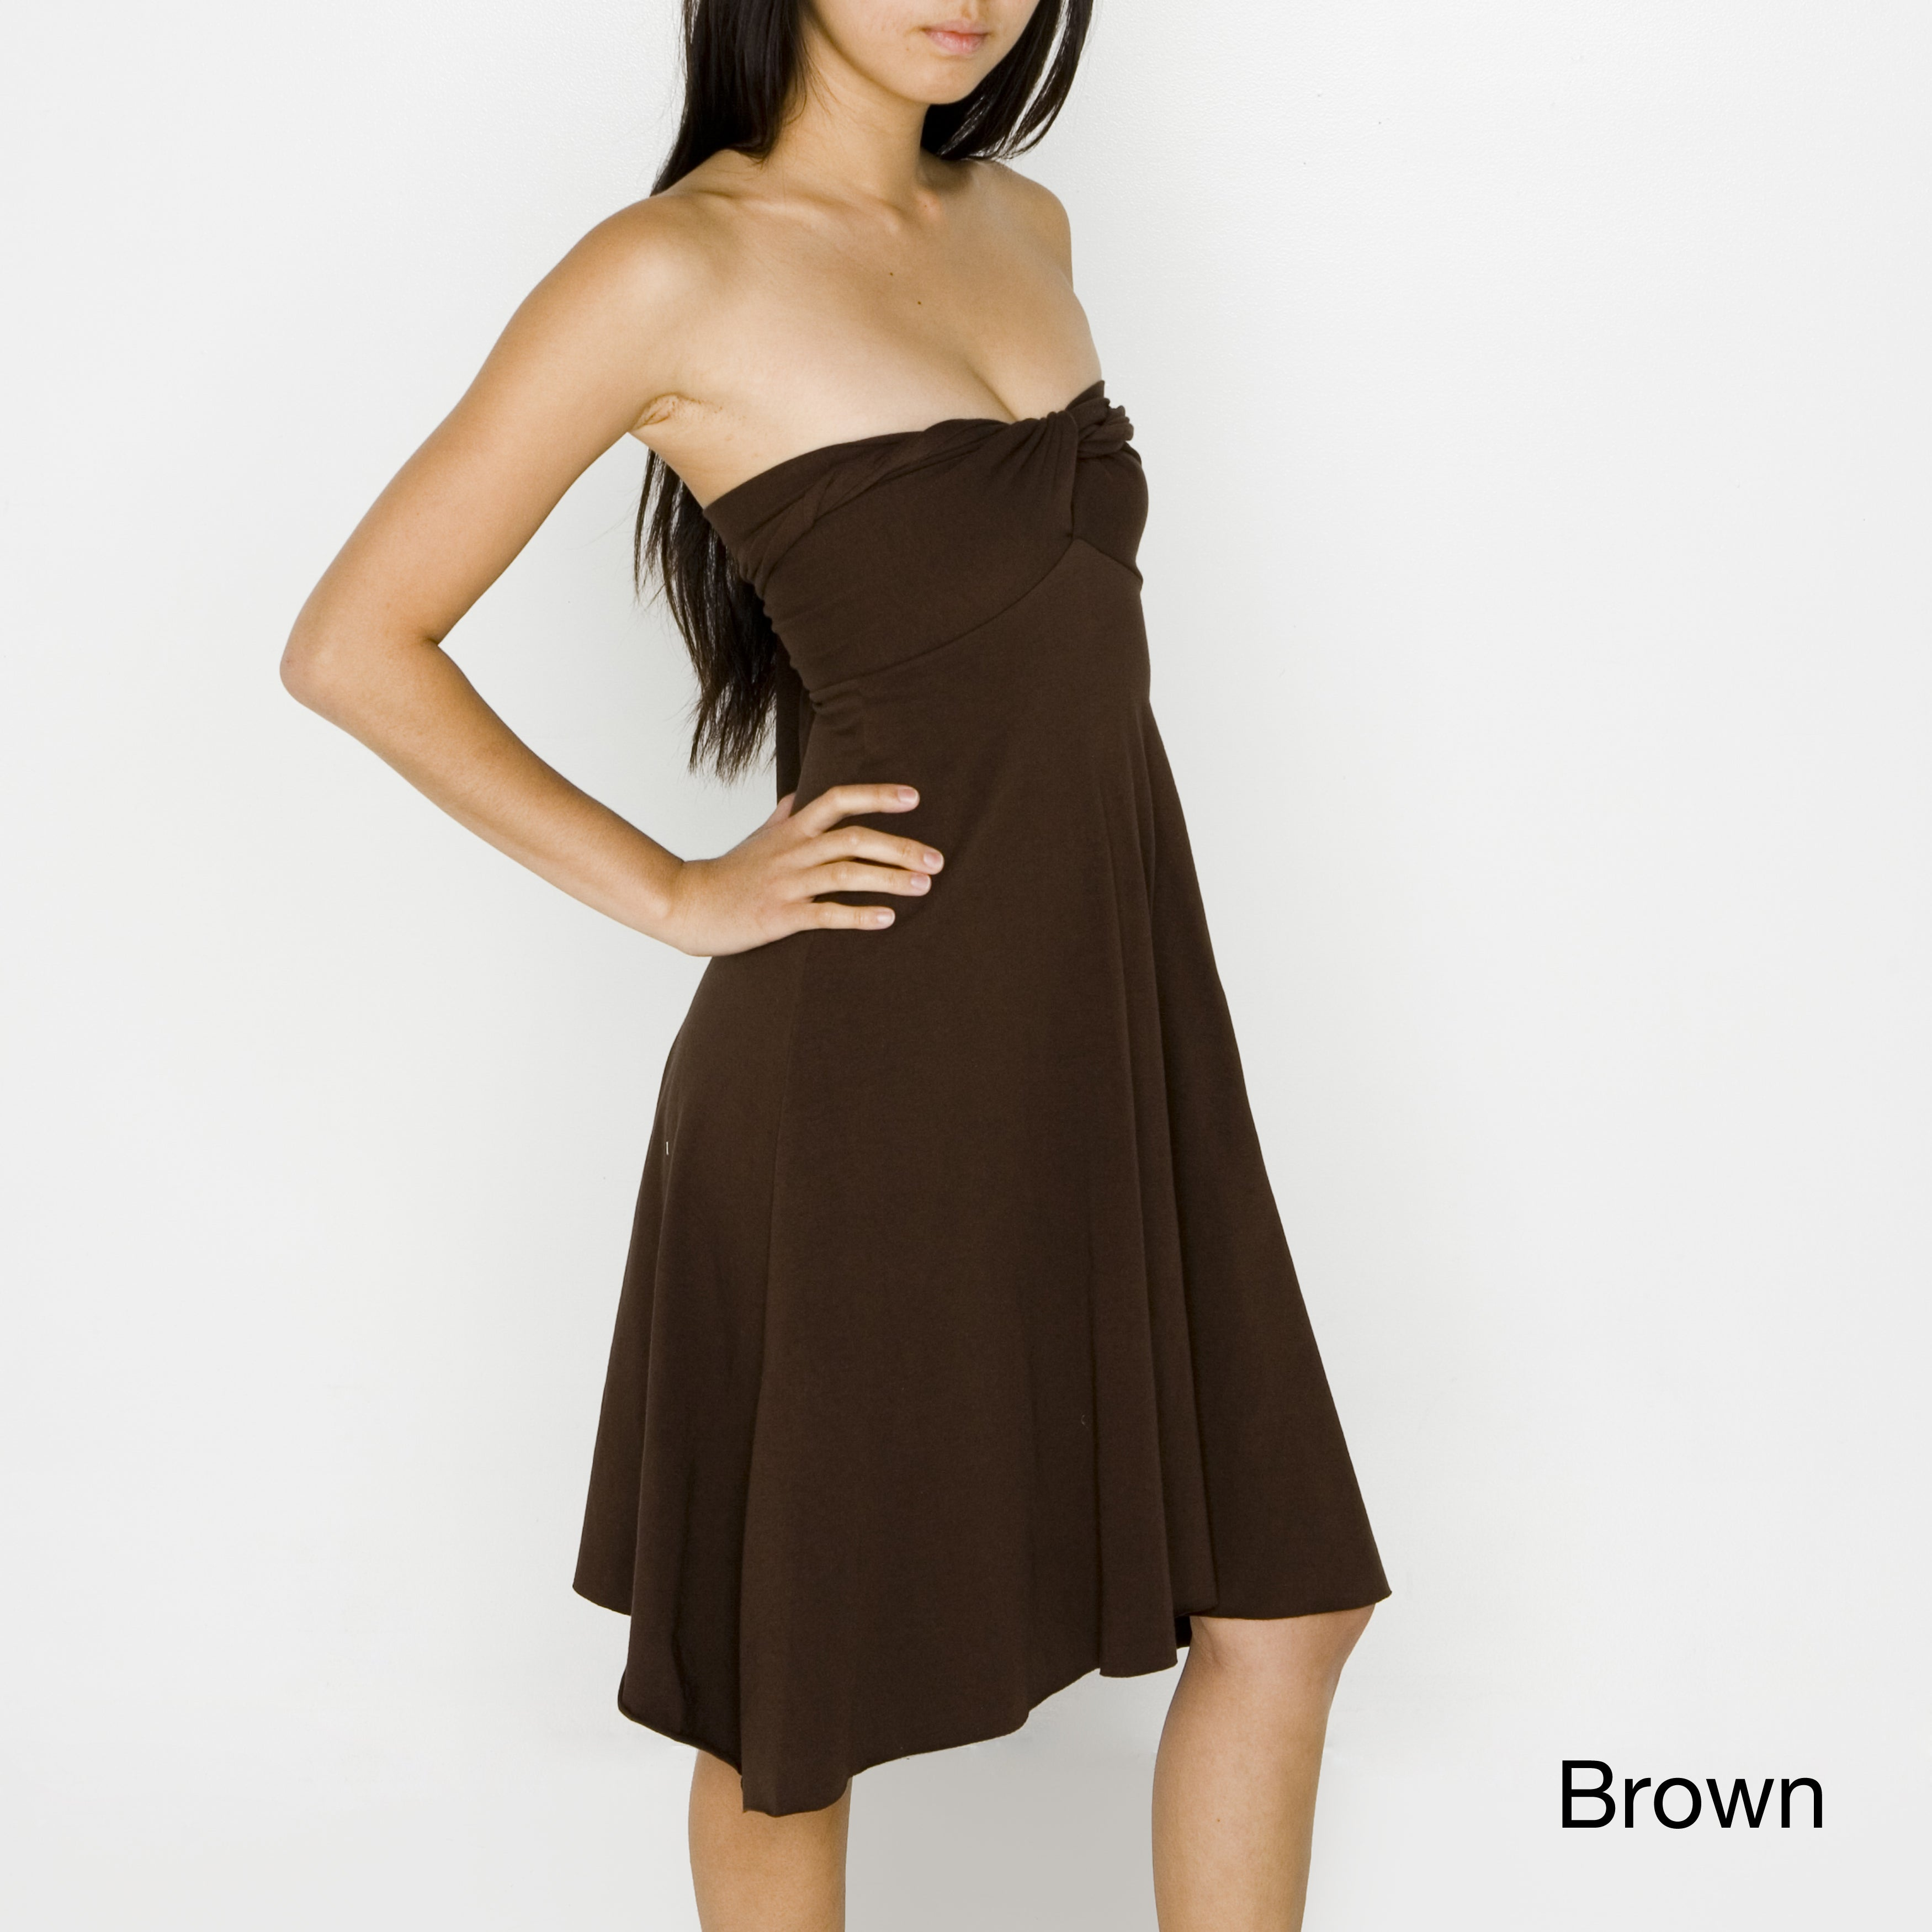 60d0c58ee9ba8 Shop American Apparel Women s Convertible Jersey Bandeau Dress - Free  Shipping On Orders Over  45 - Overstock - 7472546